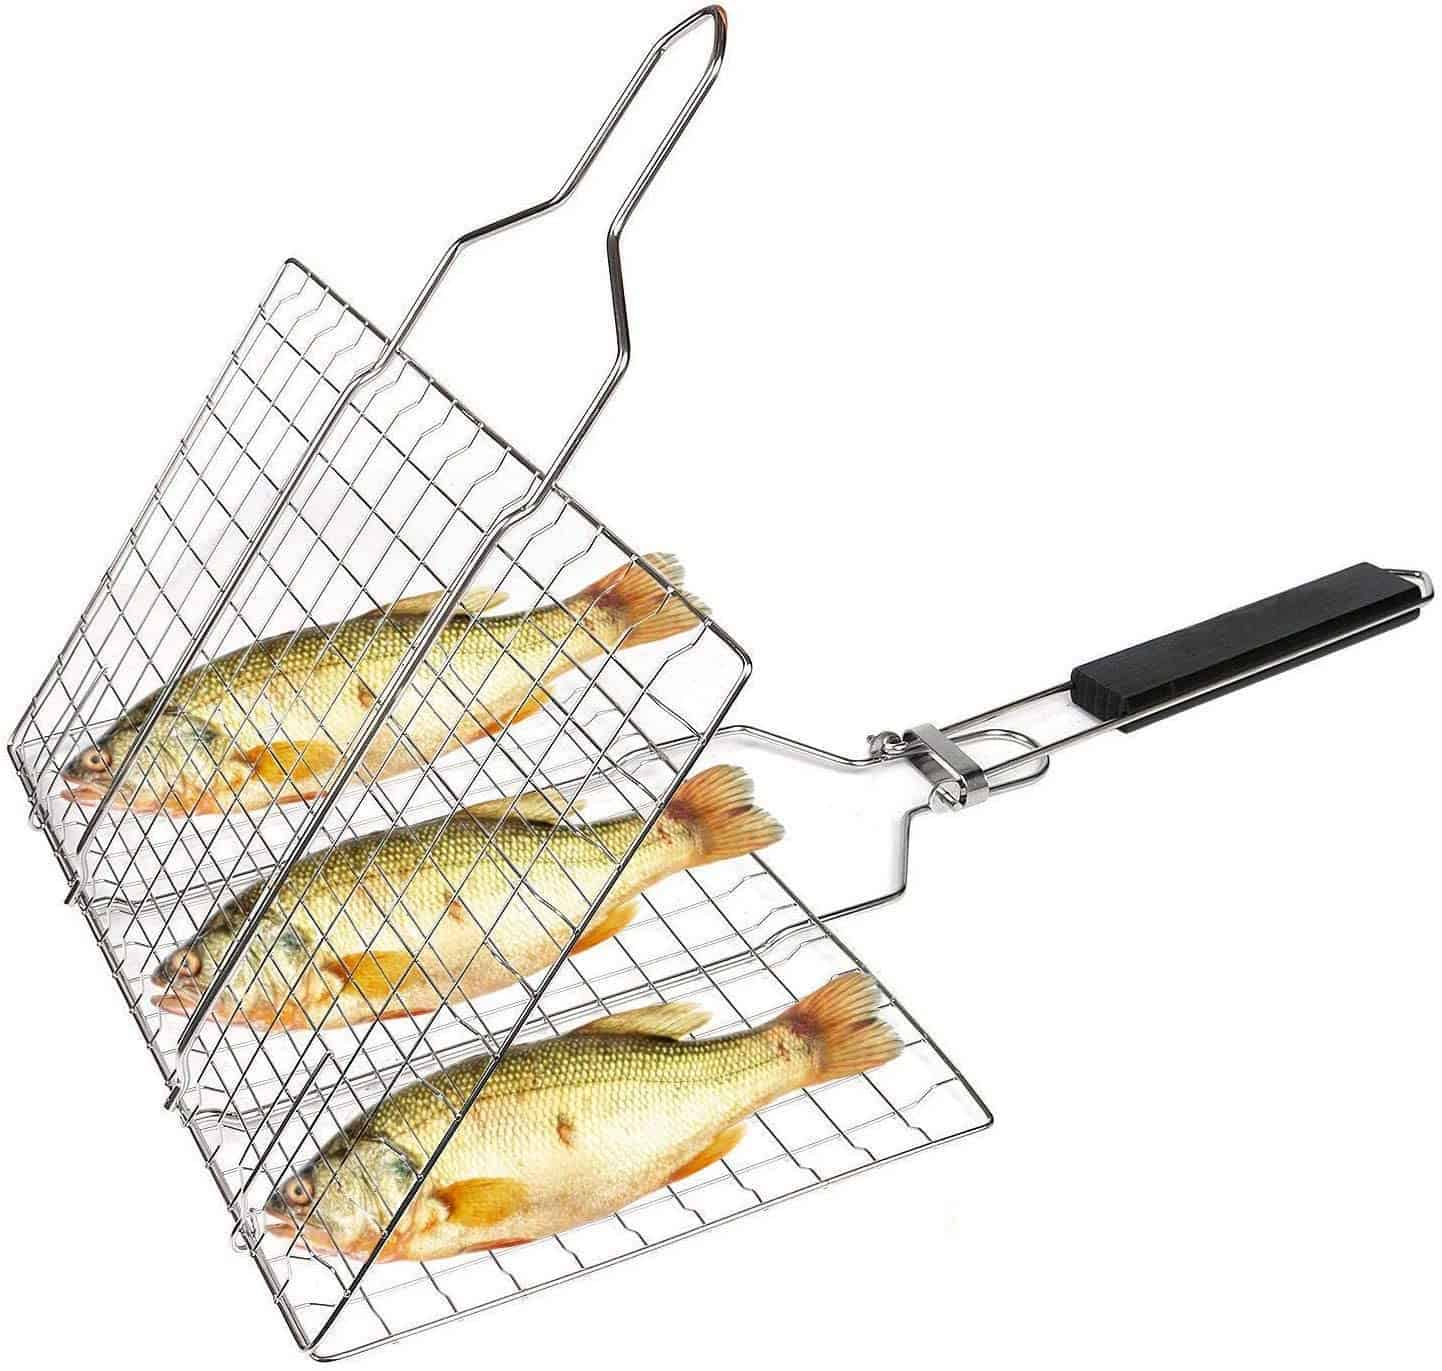 Best basket for grilling fish- SHAN PU Grill Basket with Removable Handle for Fish